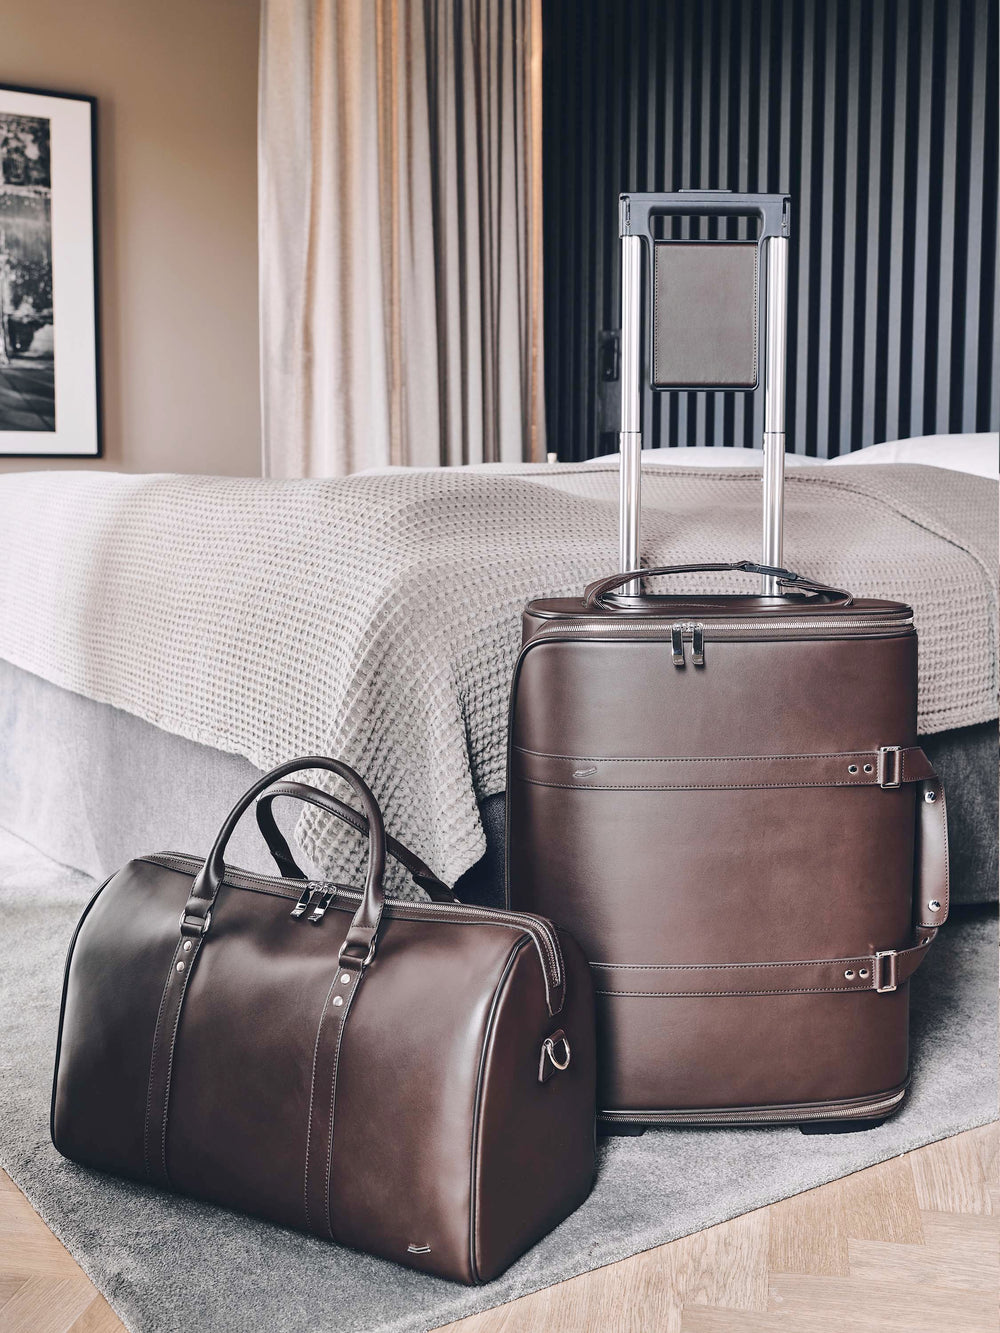 vocier f34 travel duffle set in brown leather braunes leder